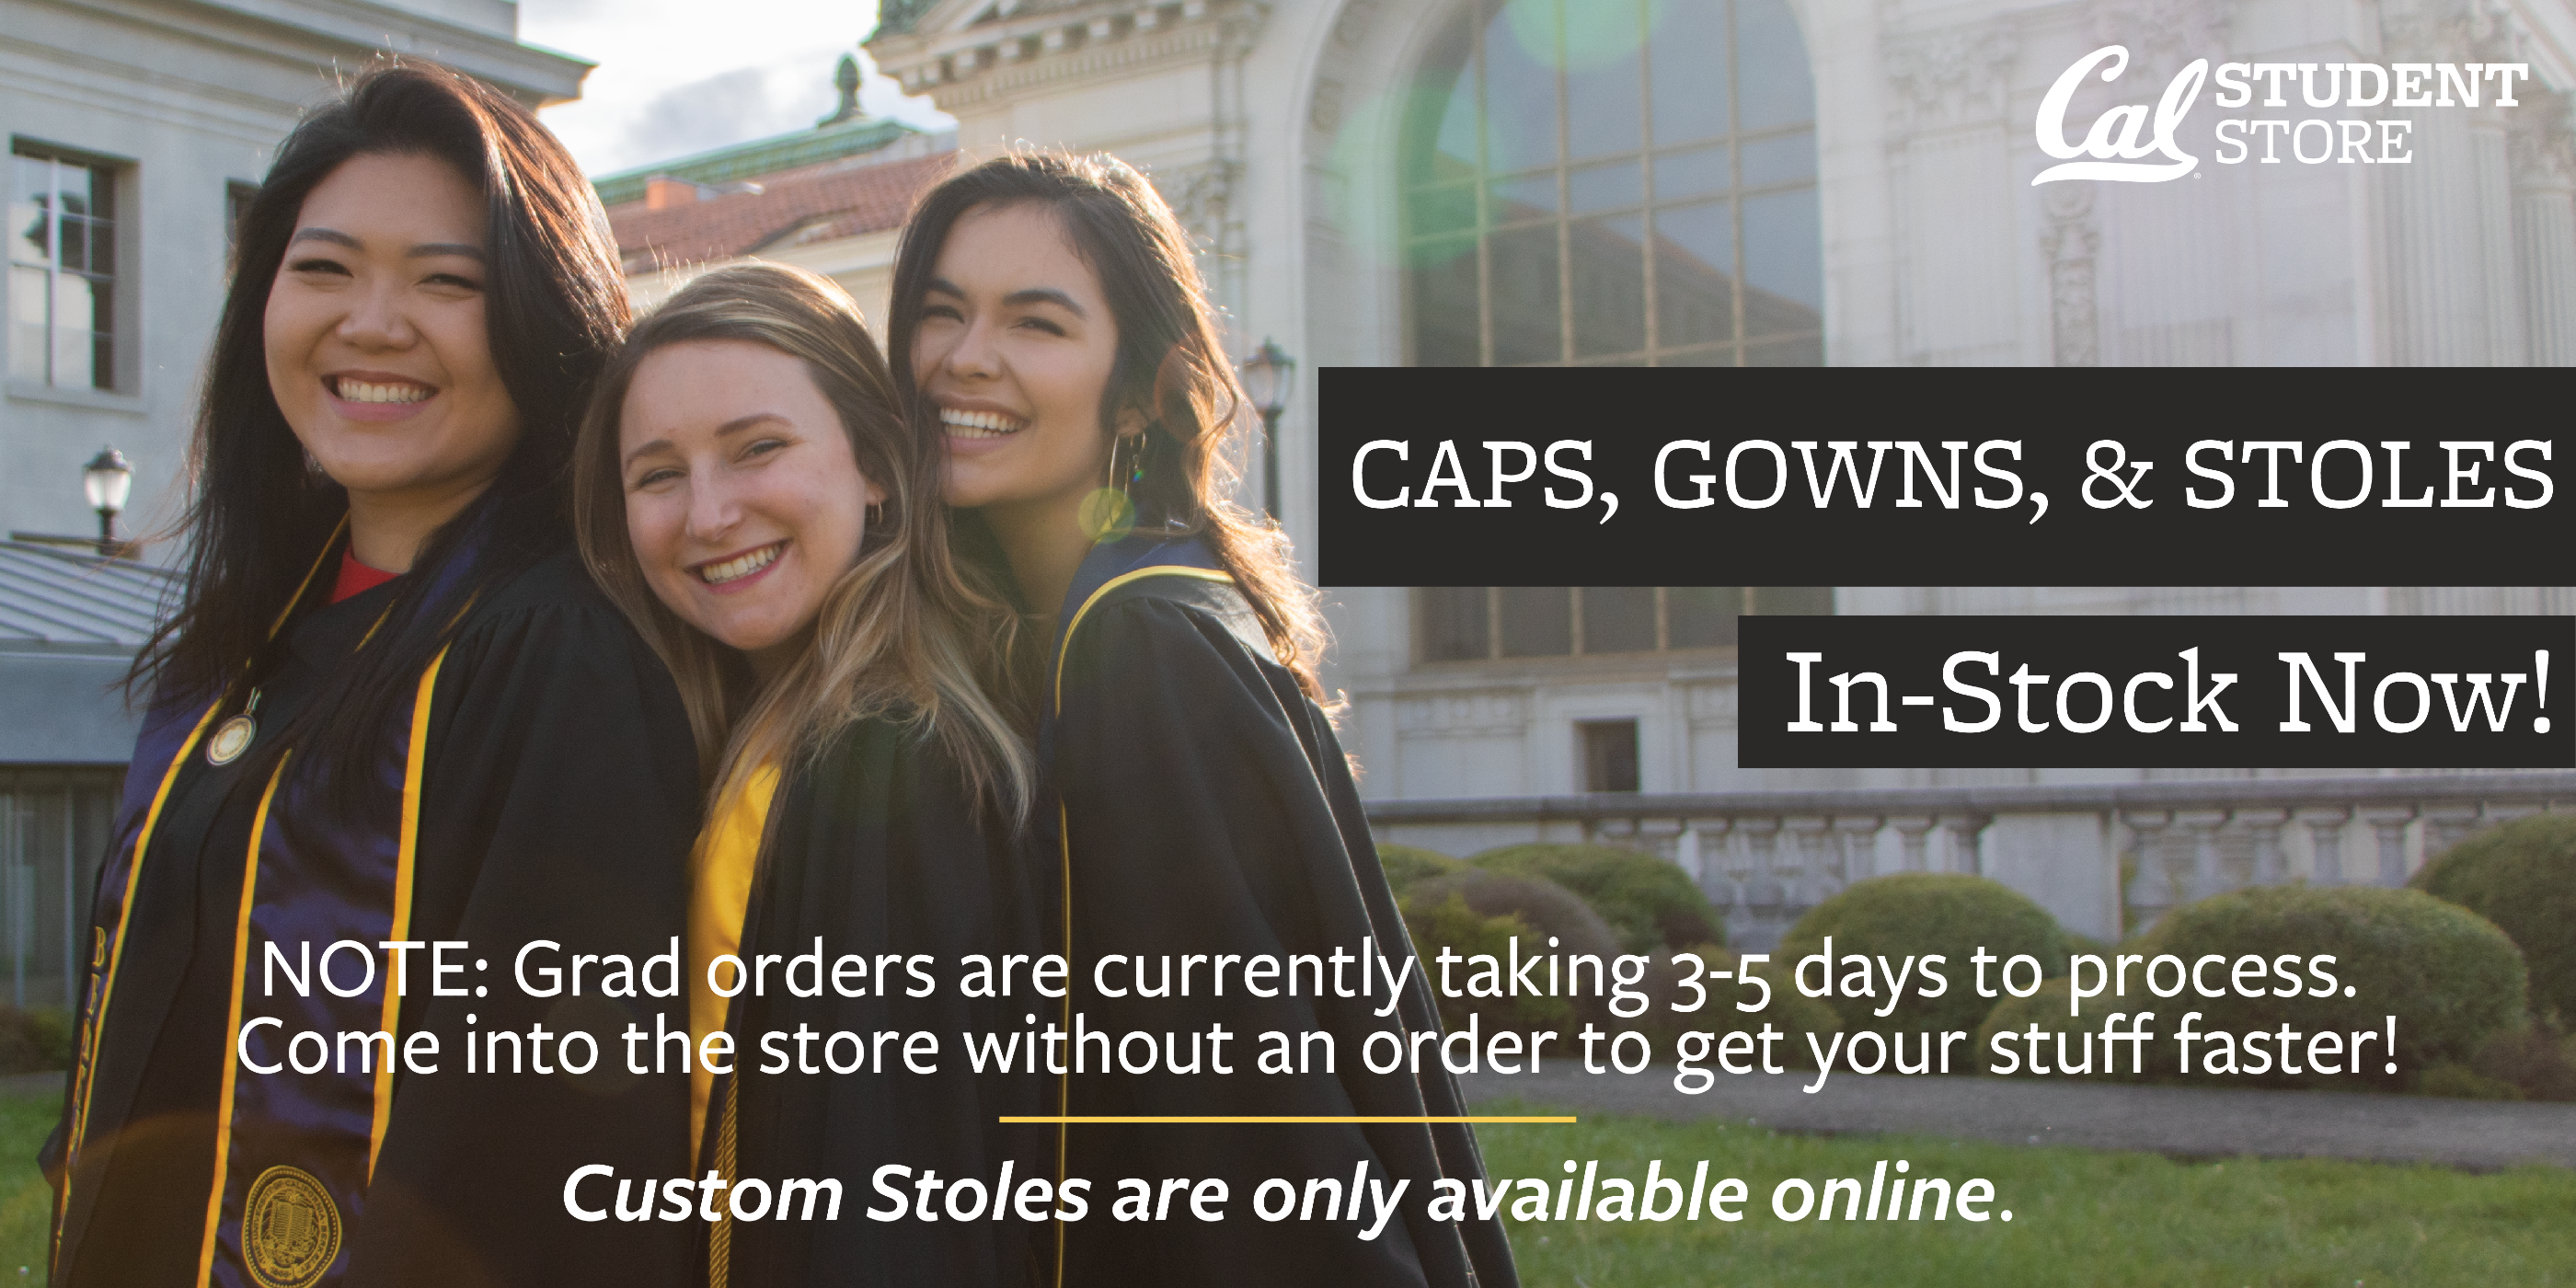 Caps, Gowns and stoles are in stock now.